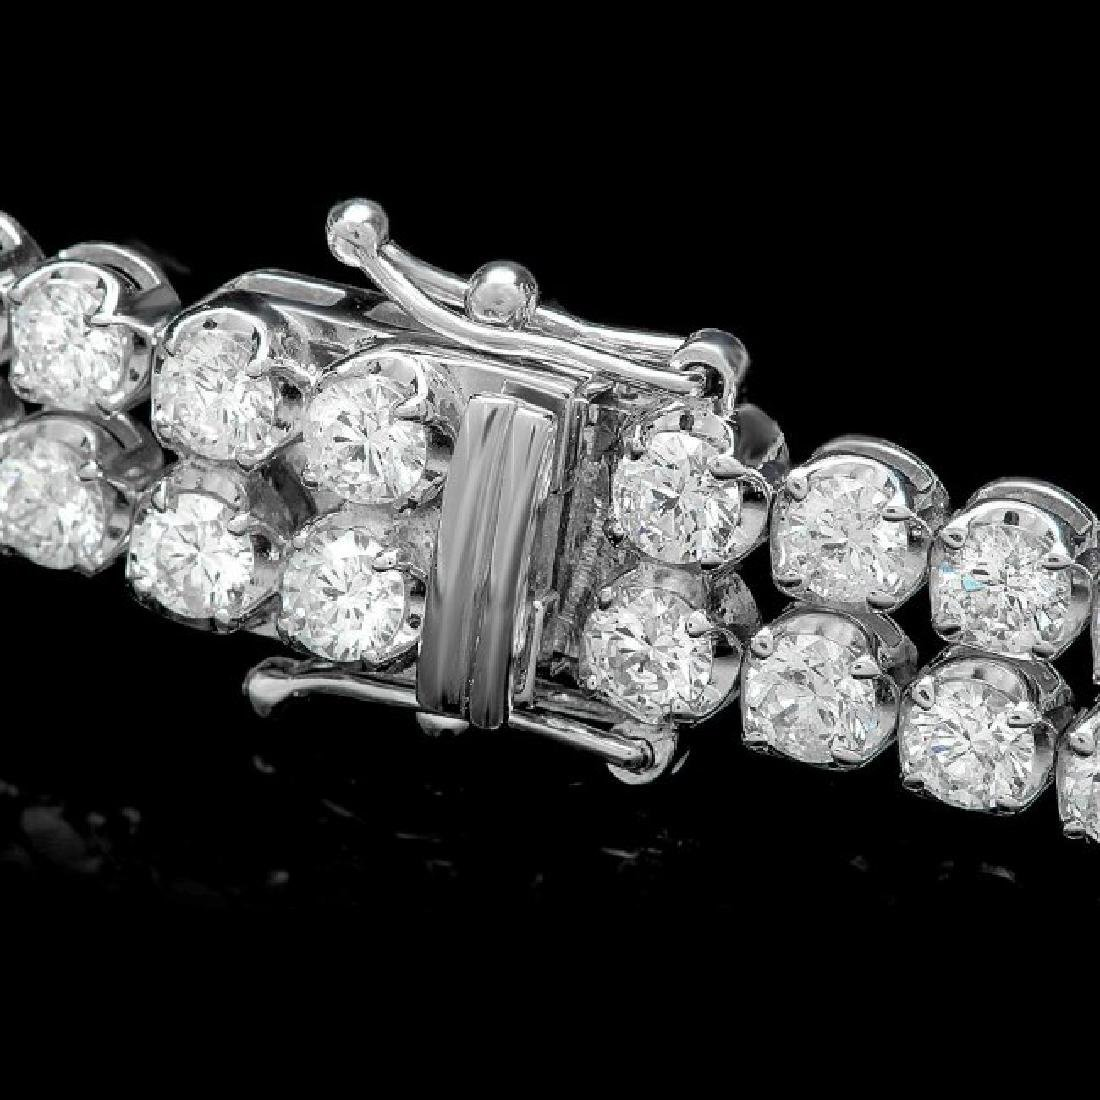 18k White Gold 10.80ct Diamond Bracelet - 2